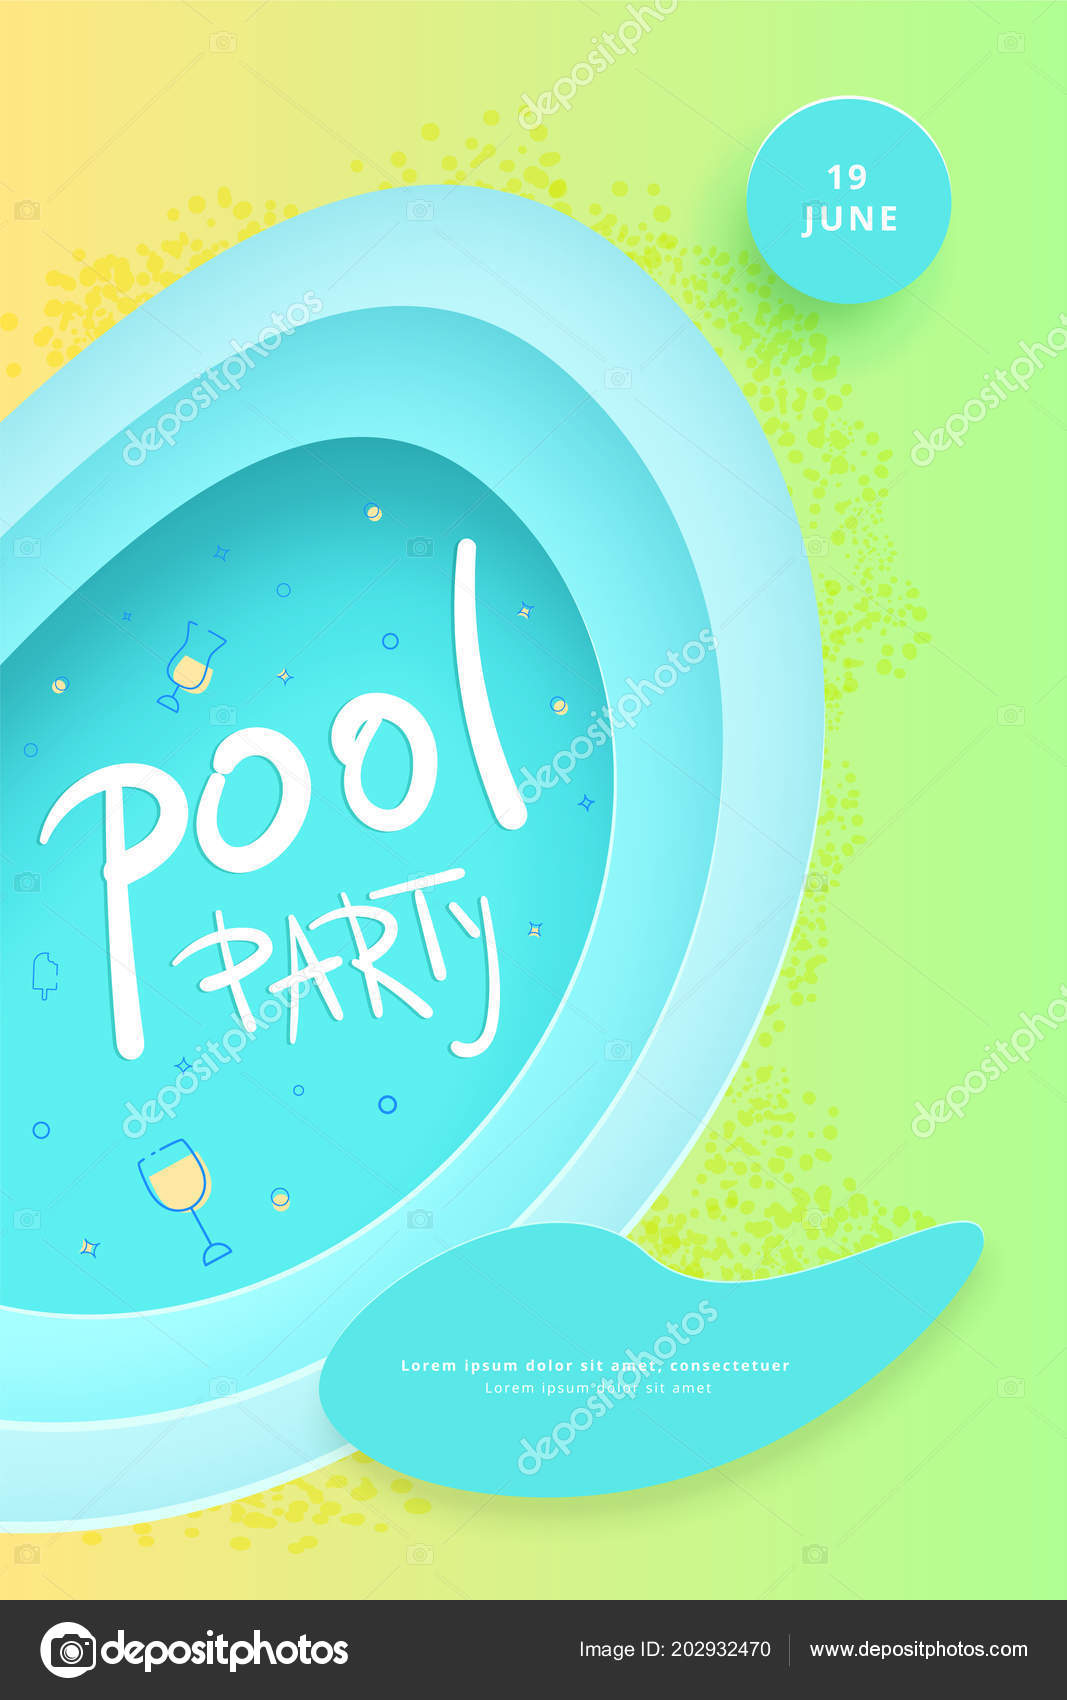 Pool Party Flyer Vertical Celebration Banner Paper Cut Shapes Decoration Stock Vector C Syuzannam 202932470